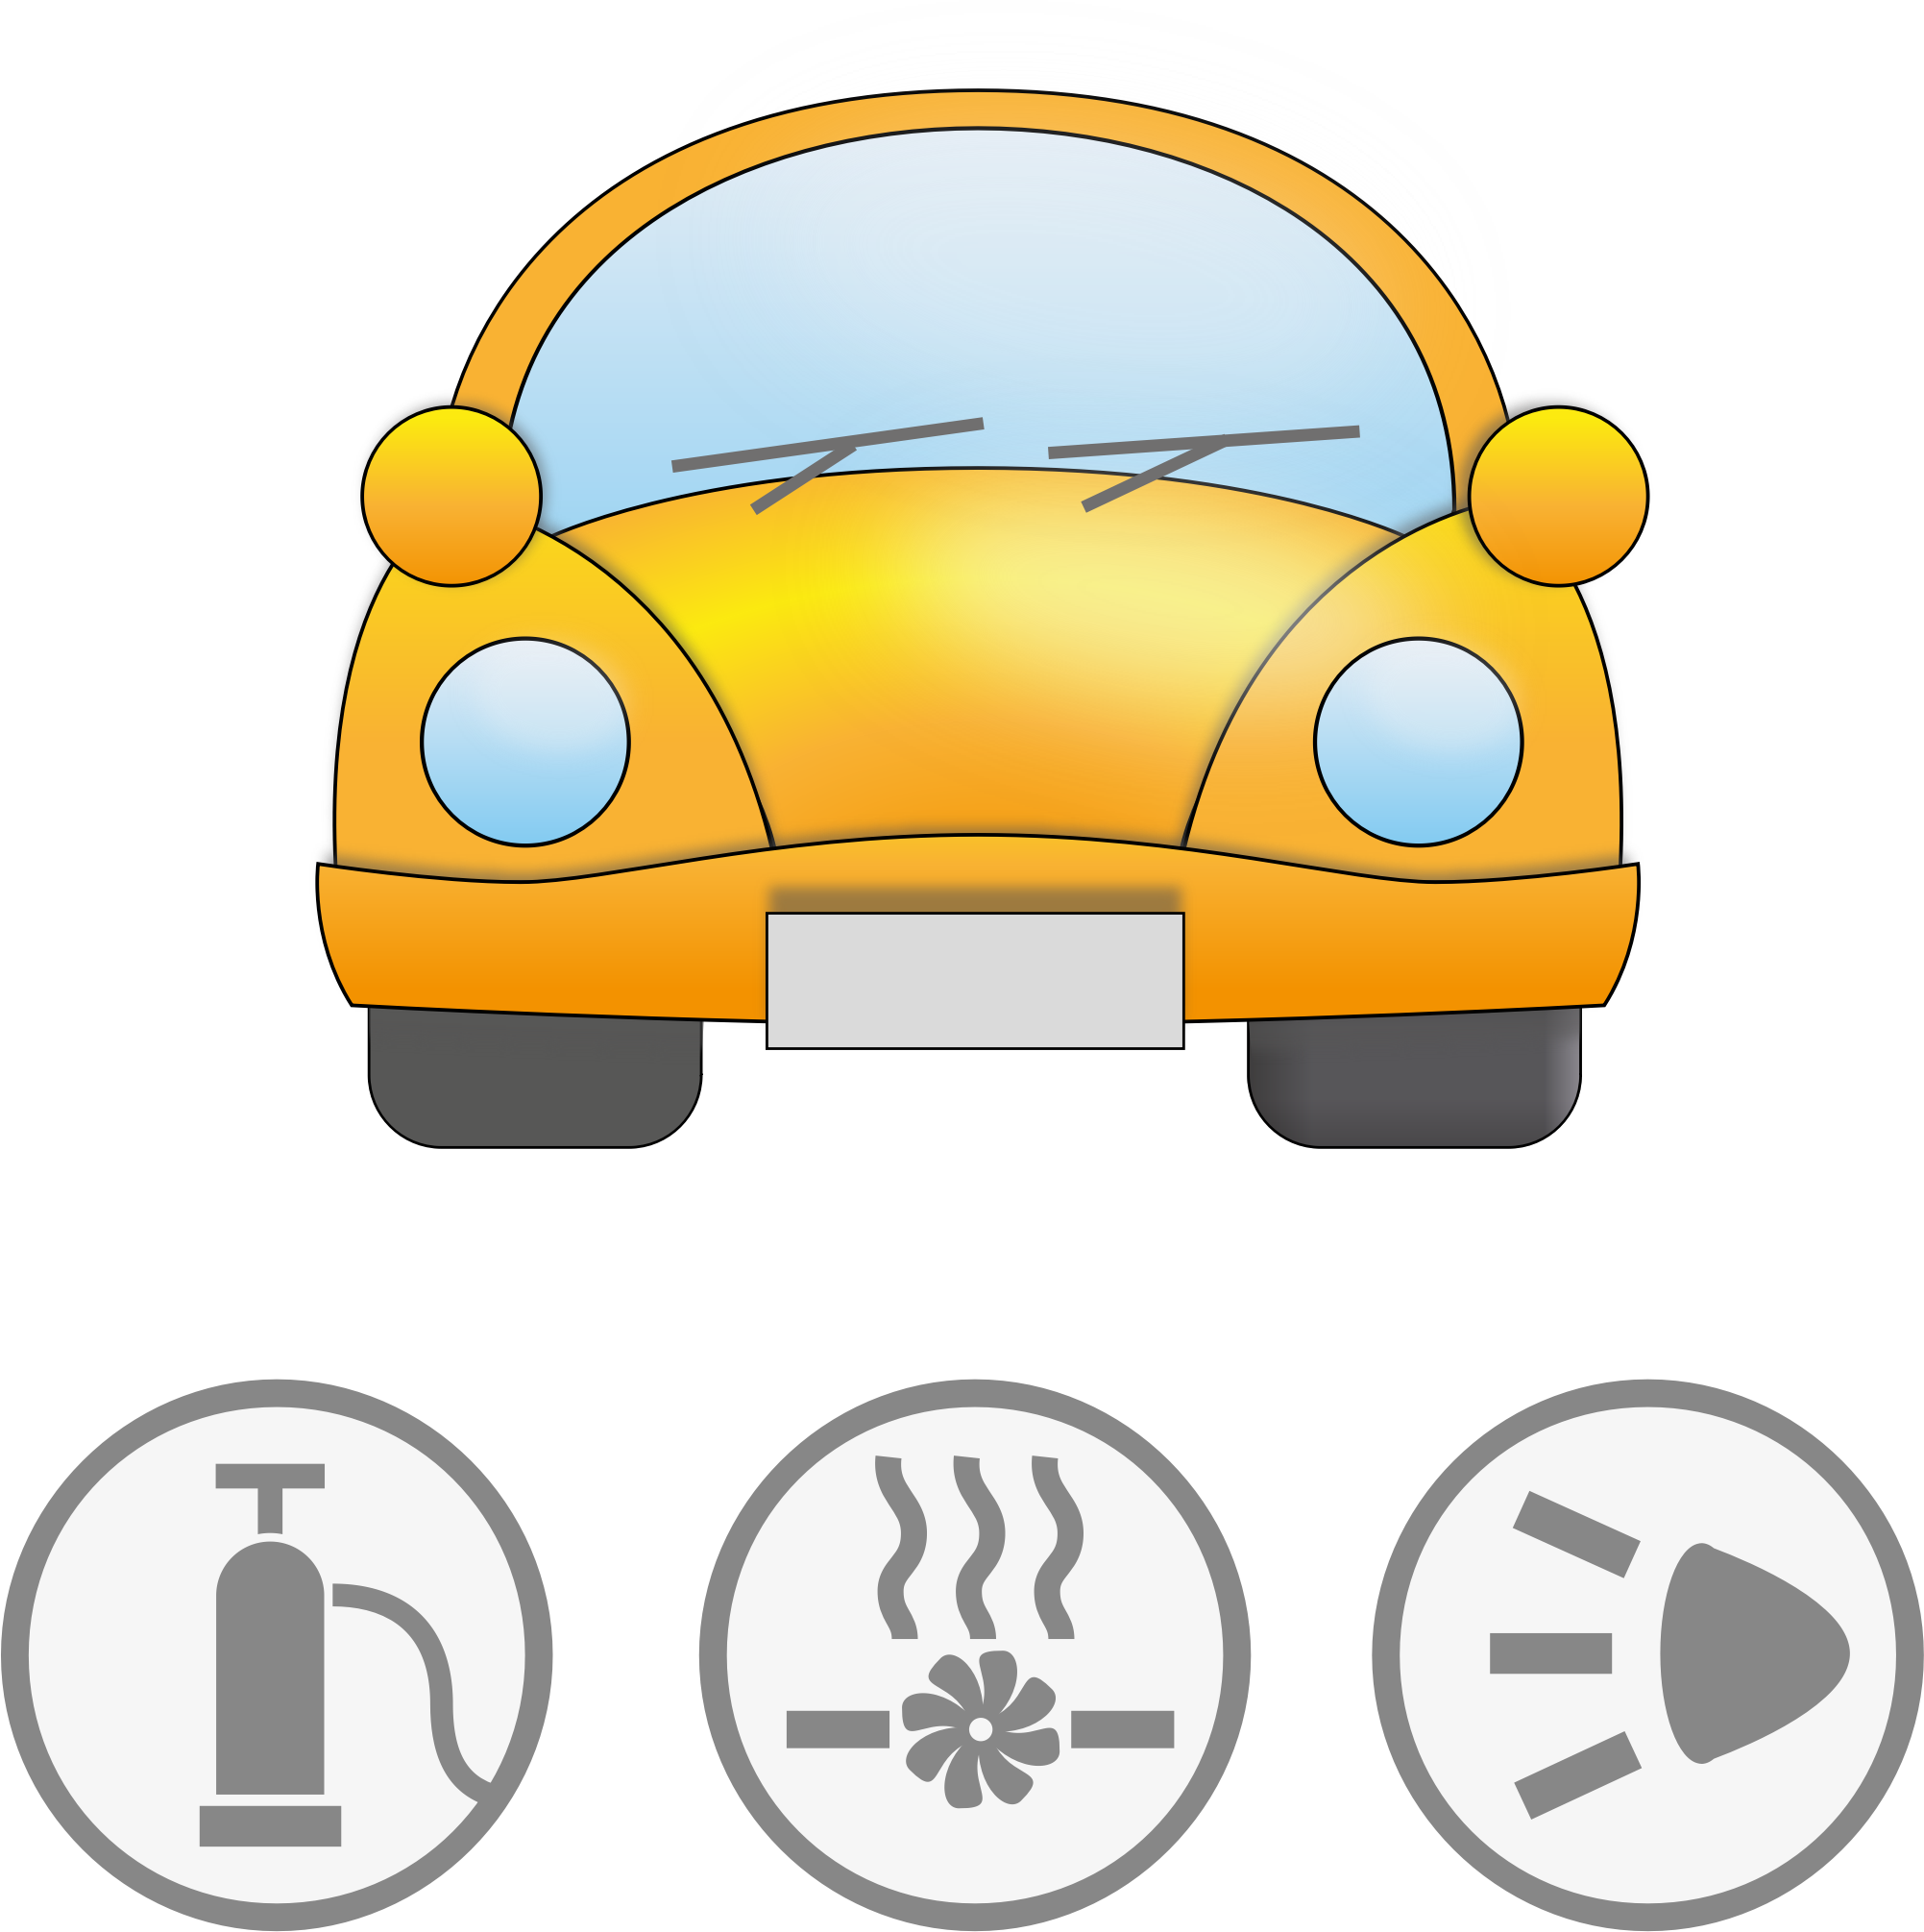 Yellow car clipart clipart transparent library Clipart - Yellow car with symbolic signs for safety clipart transparent library